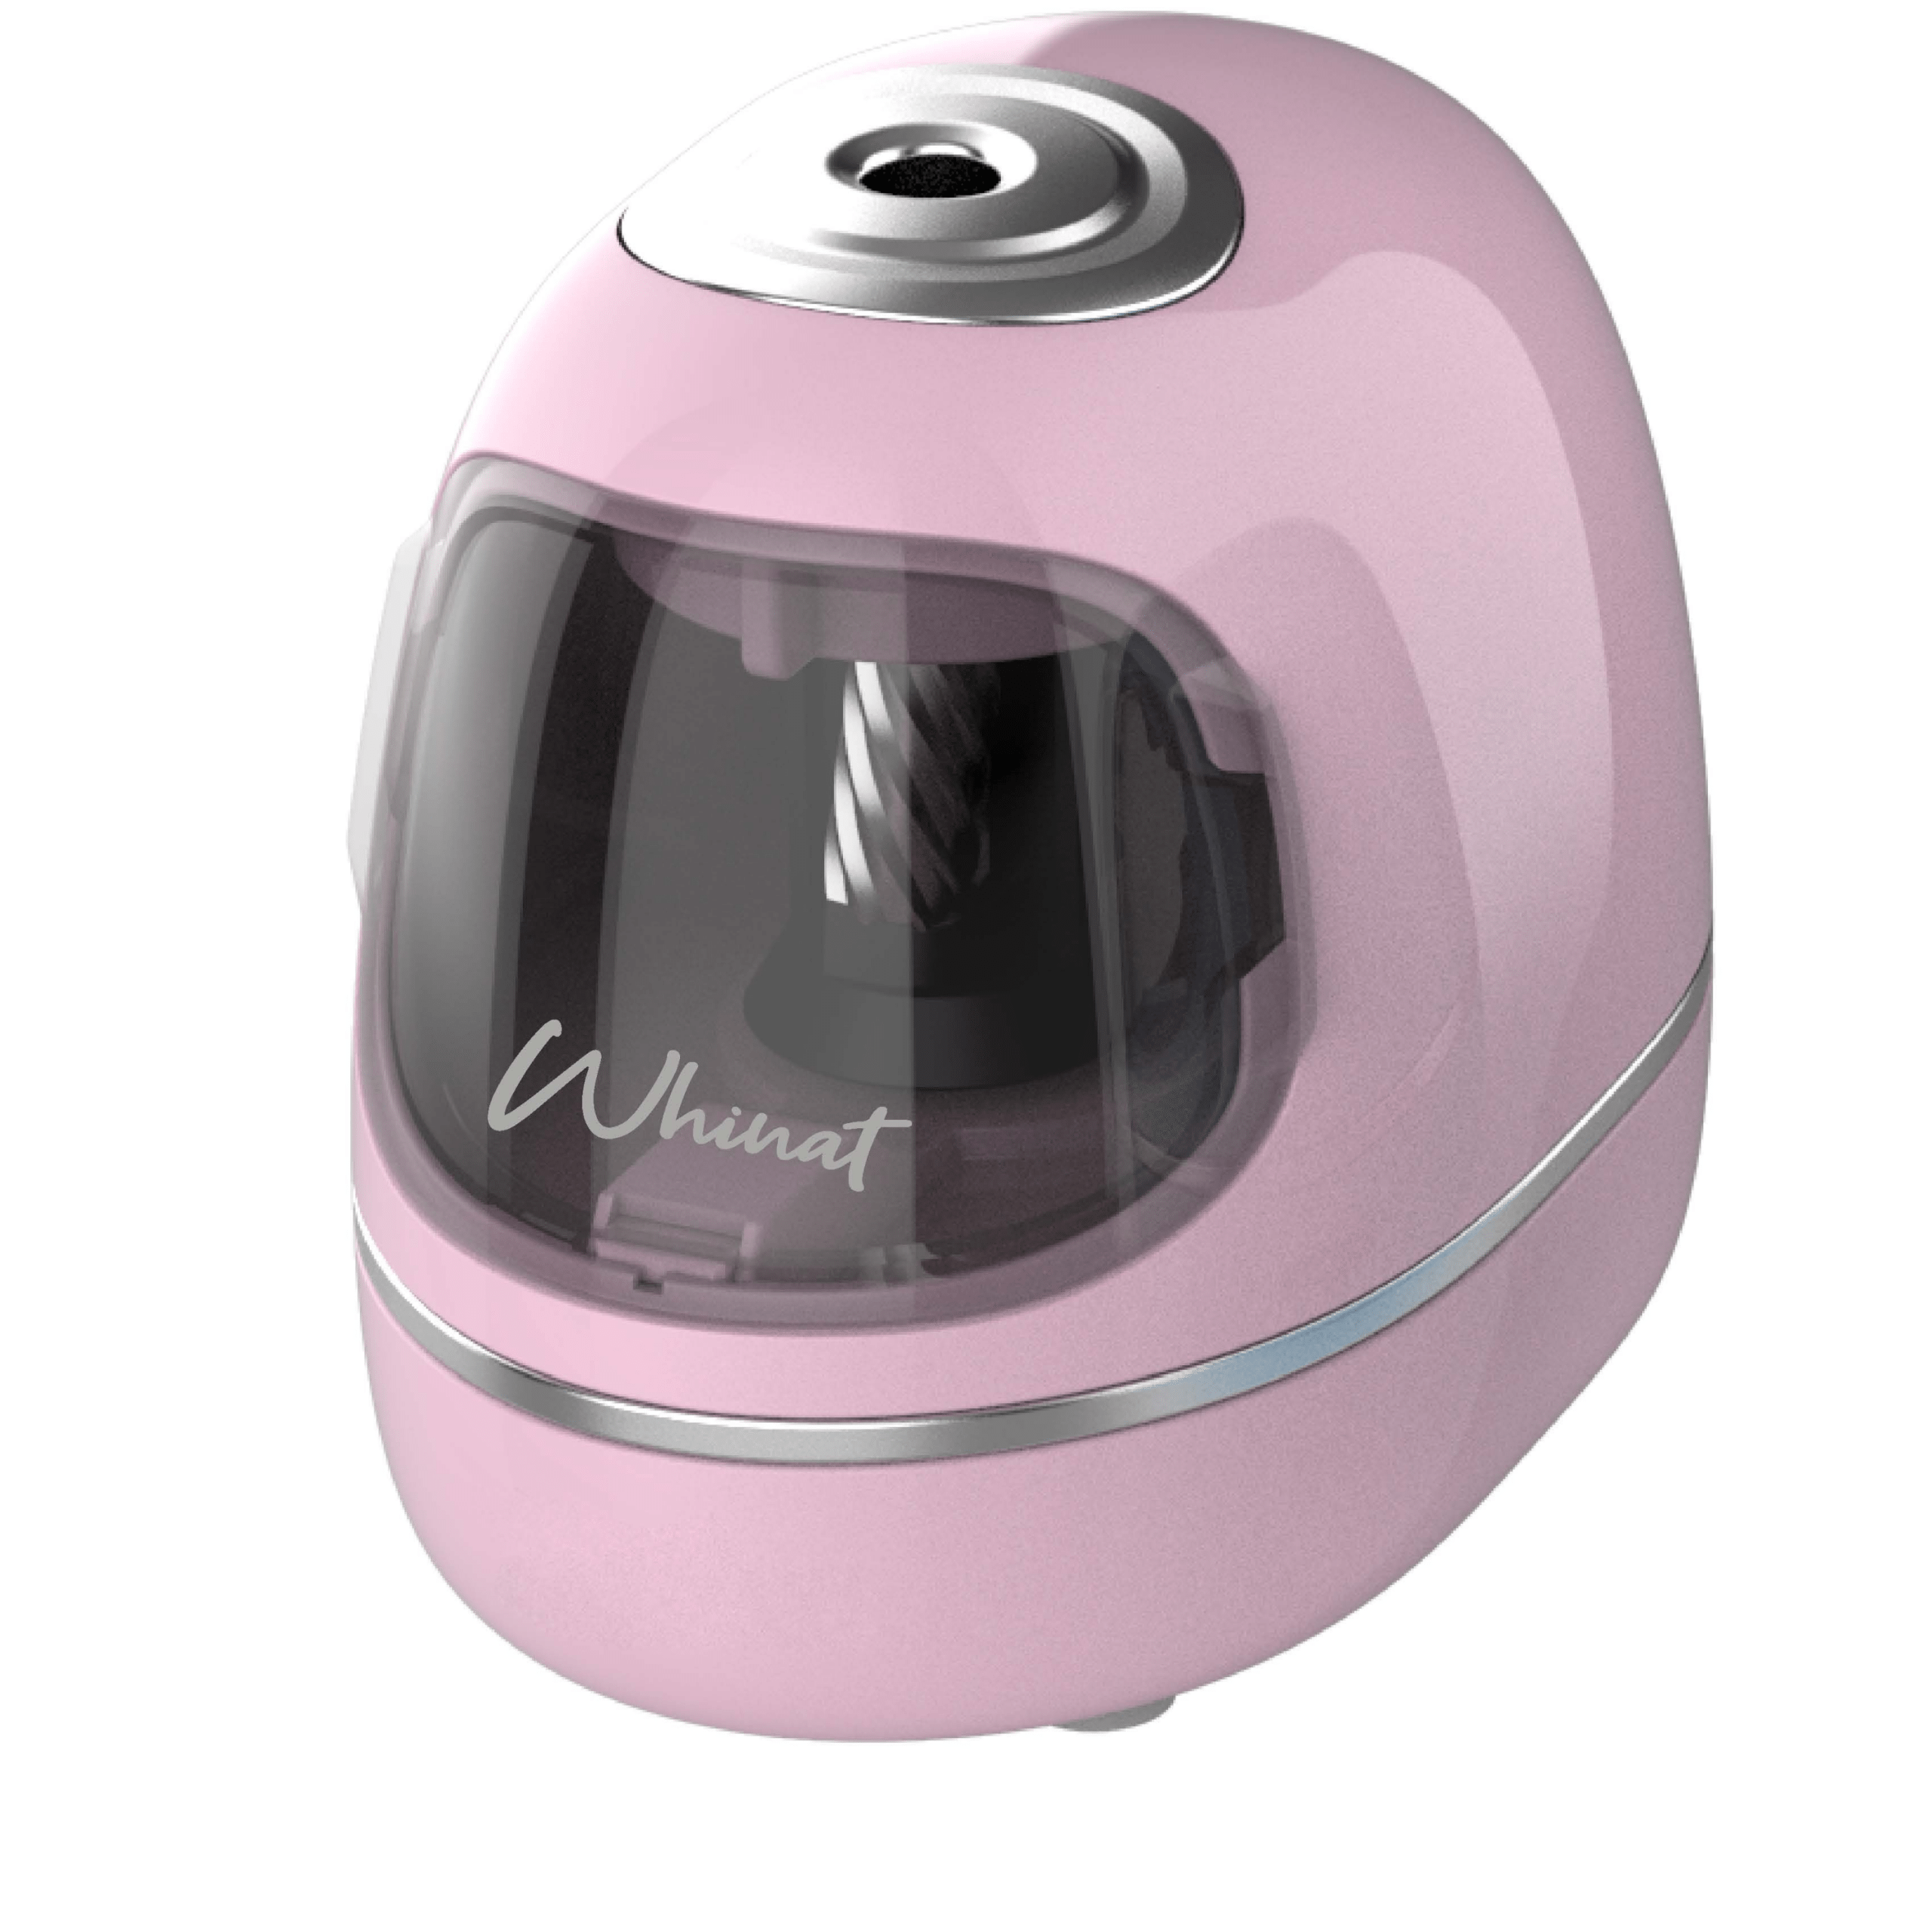 Taille crayons electrique rose whicut